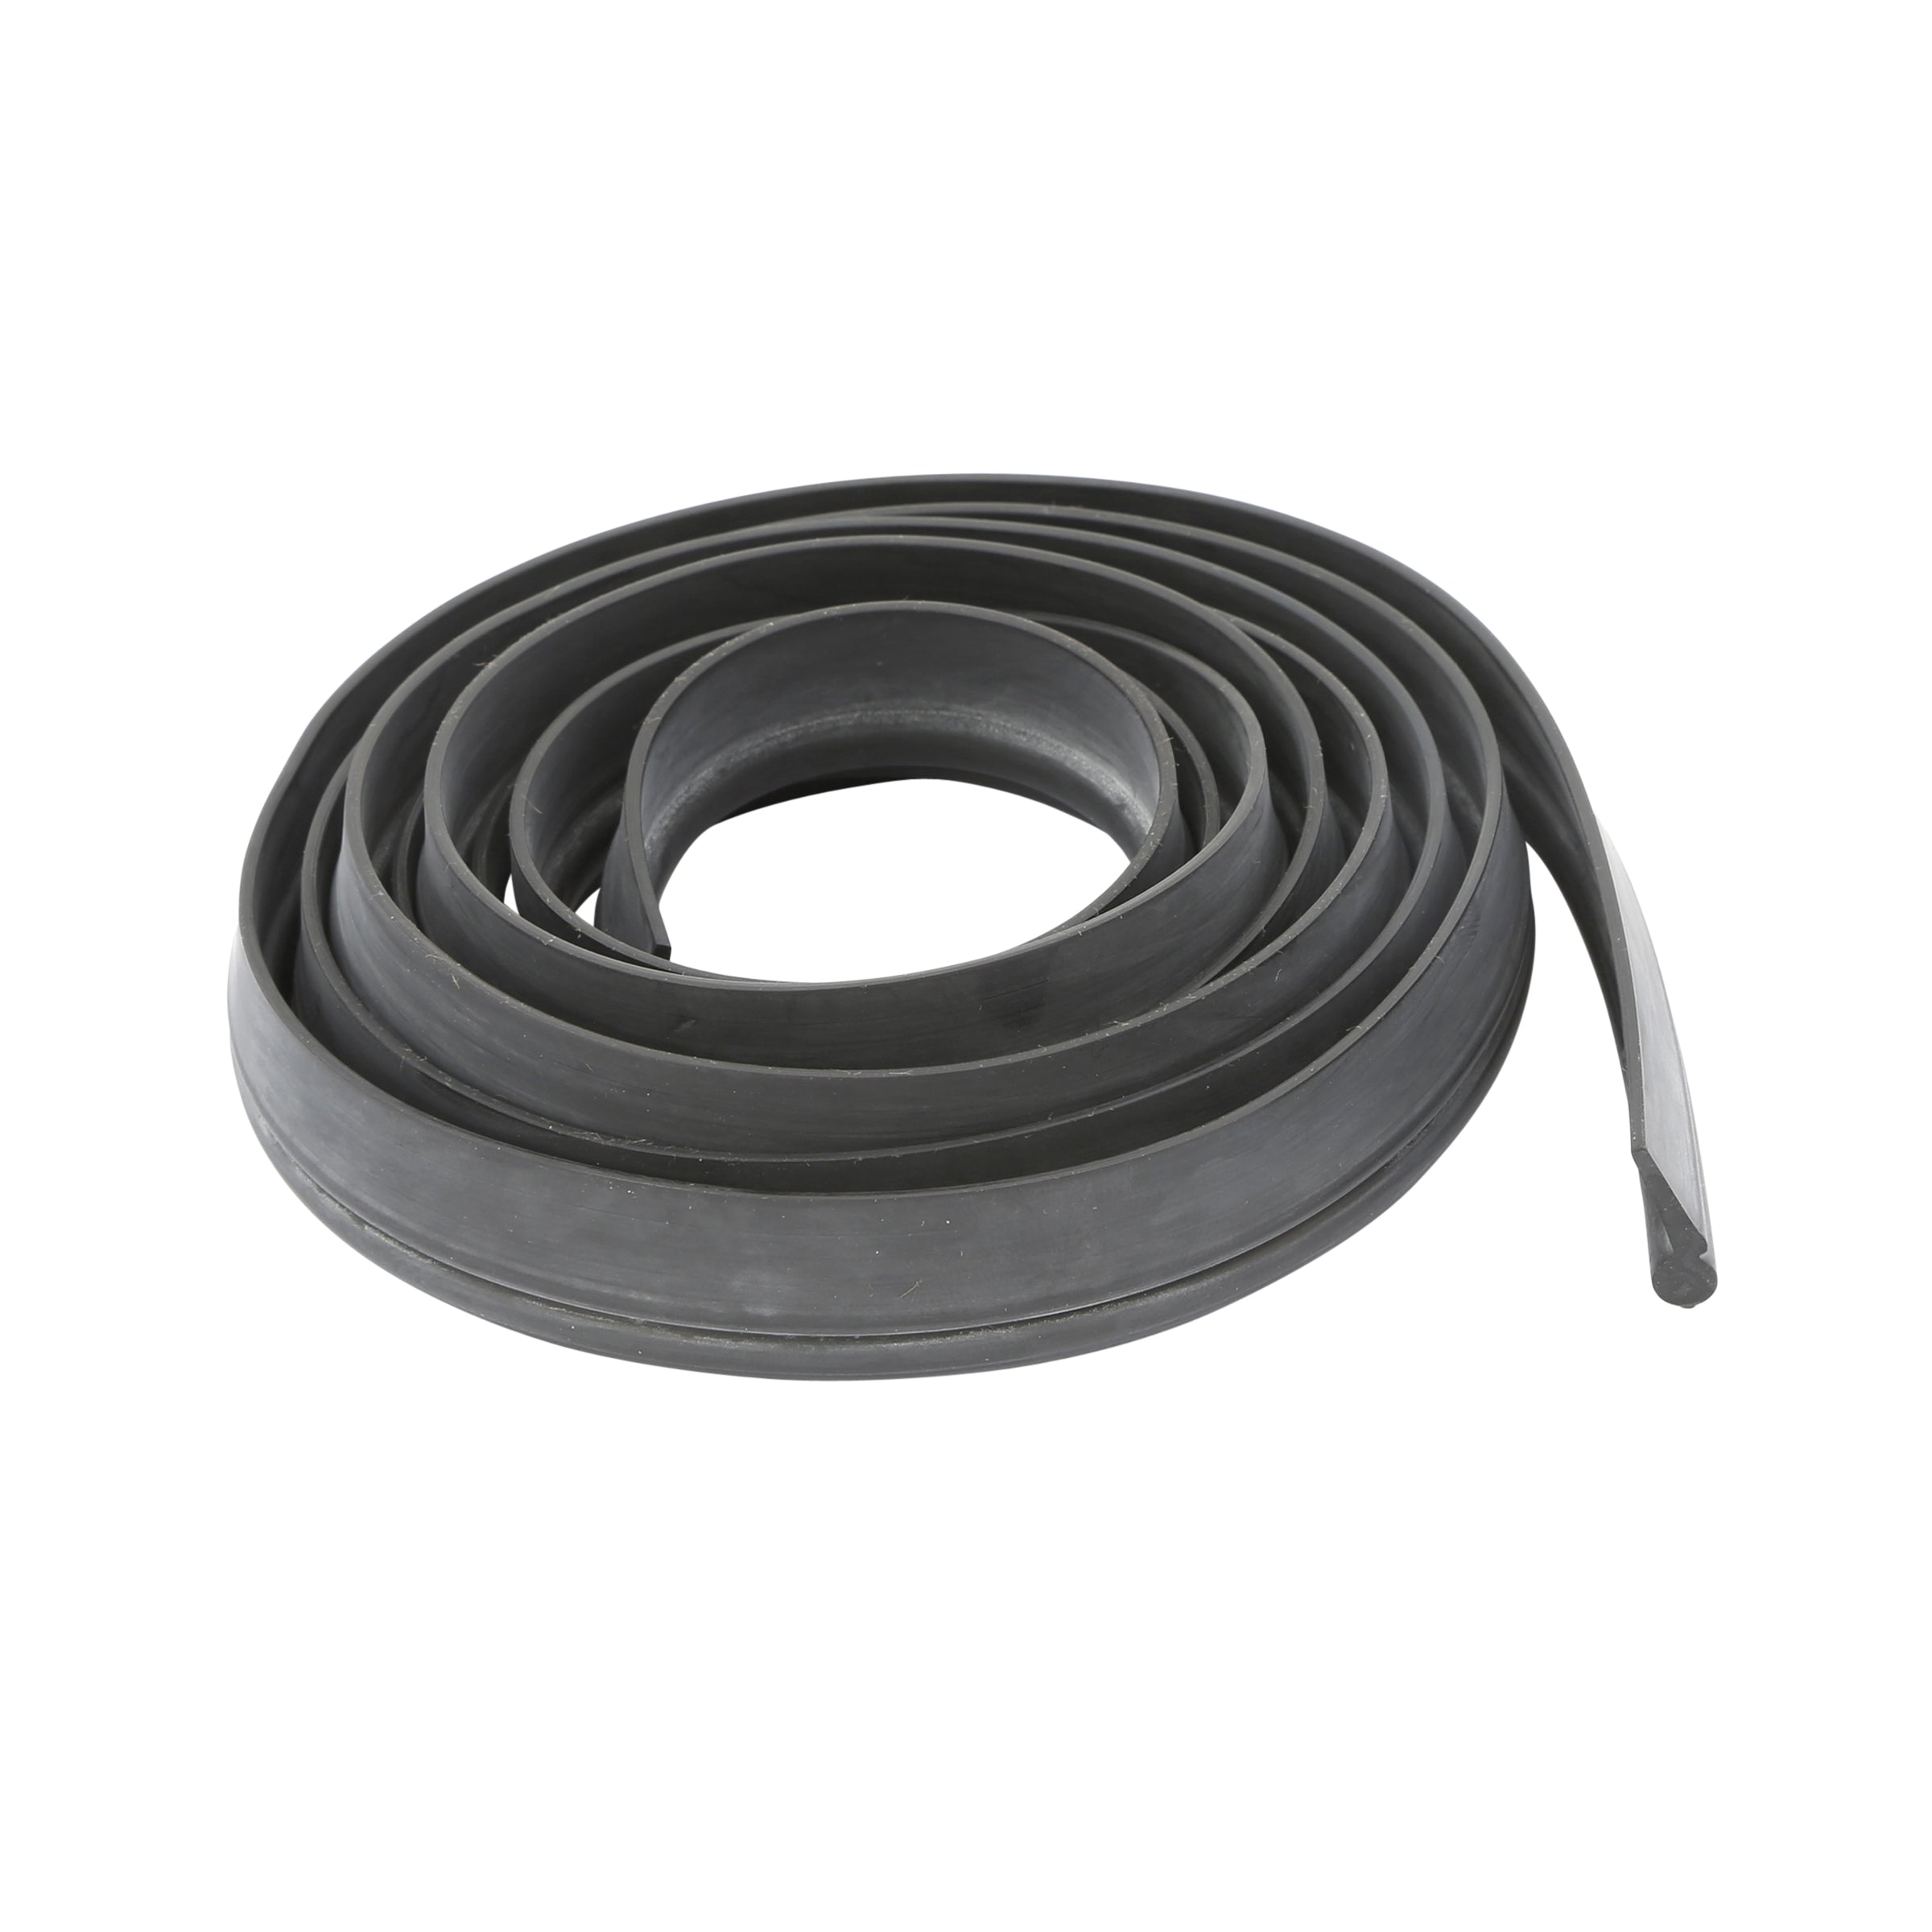 Windshield Rubber Seal (Sides & Bottom) • 1932-34 Ford Pickup